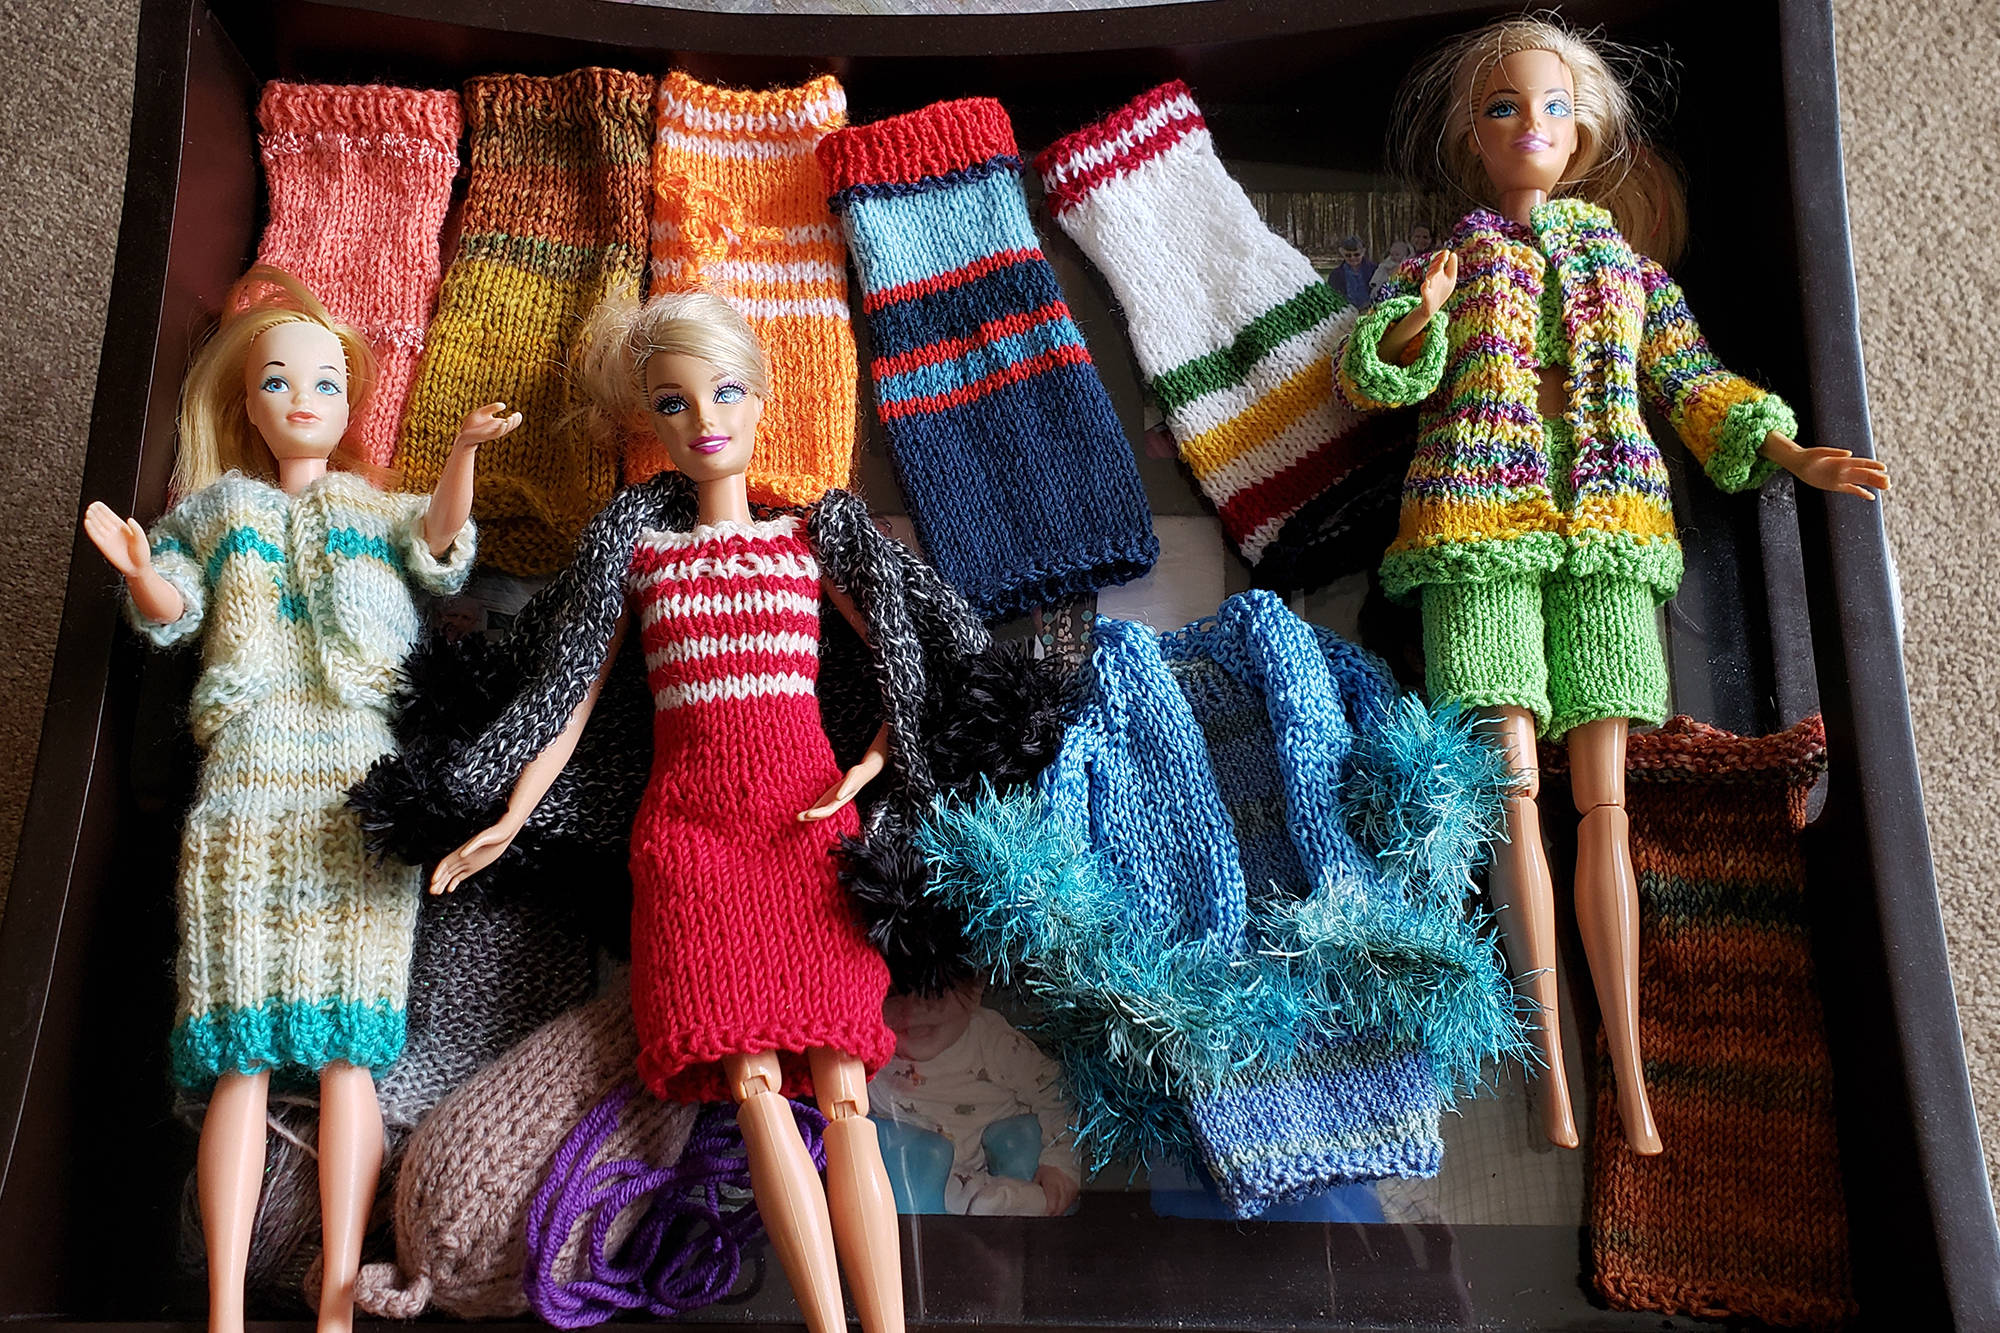 98-year-old North Okanagan woman designs clothes for Barbie